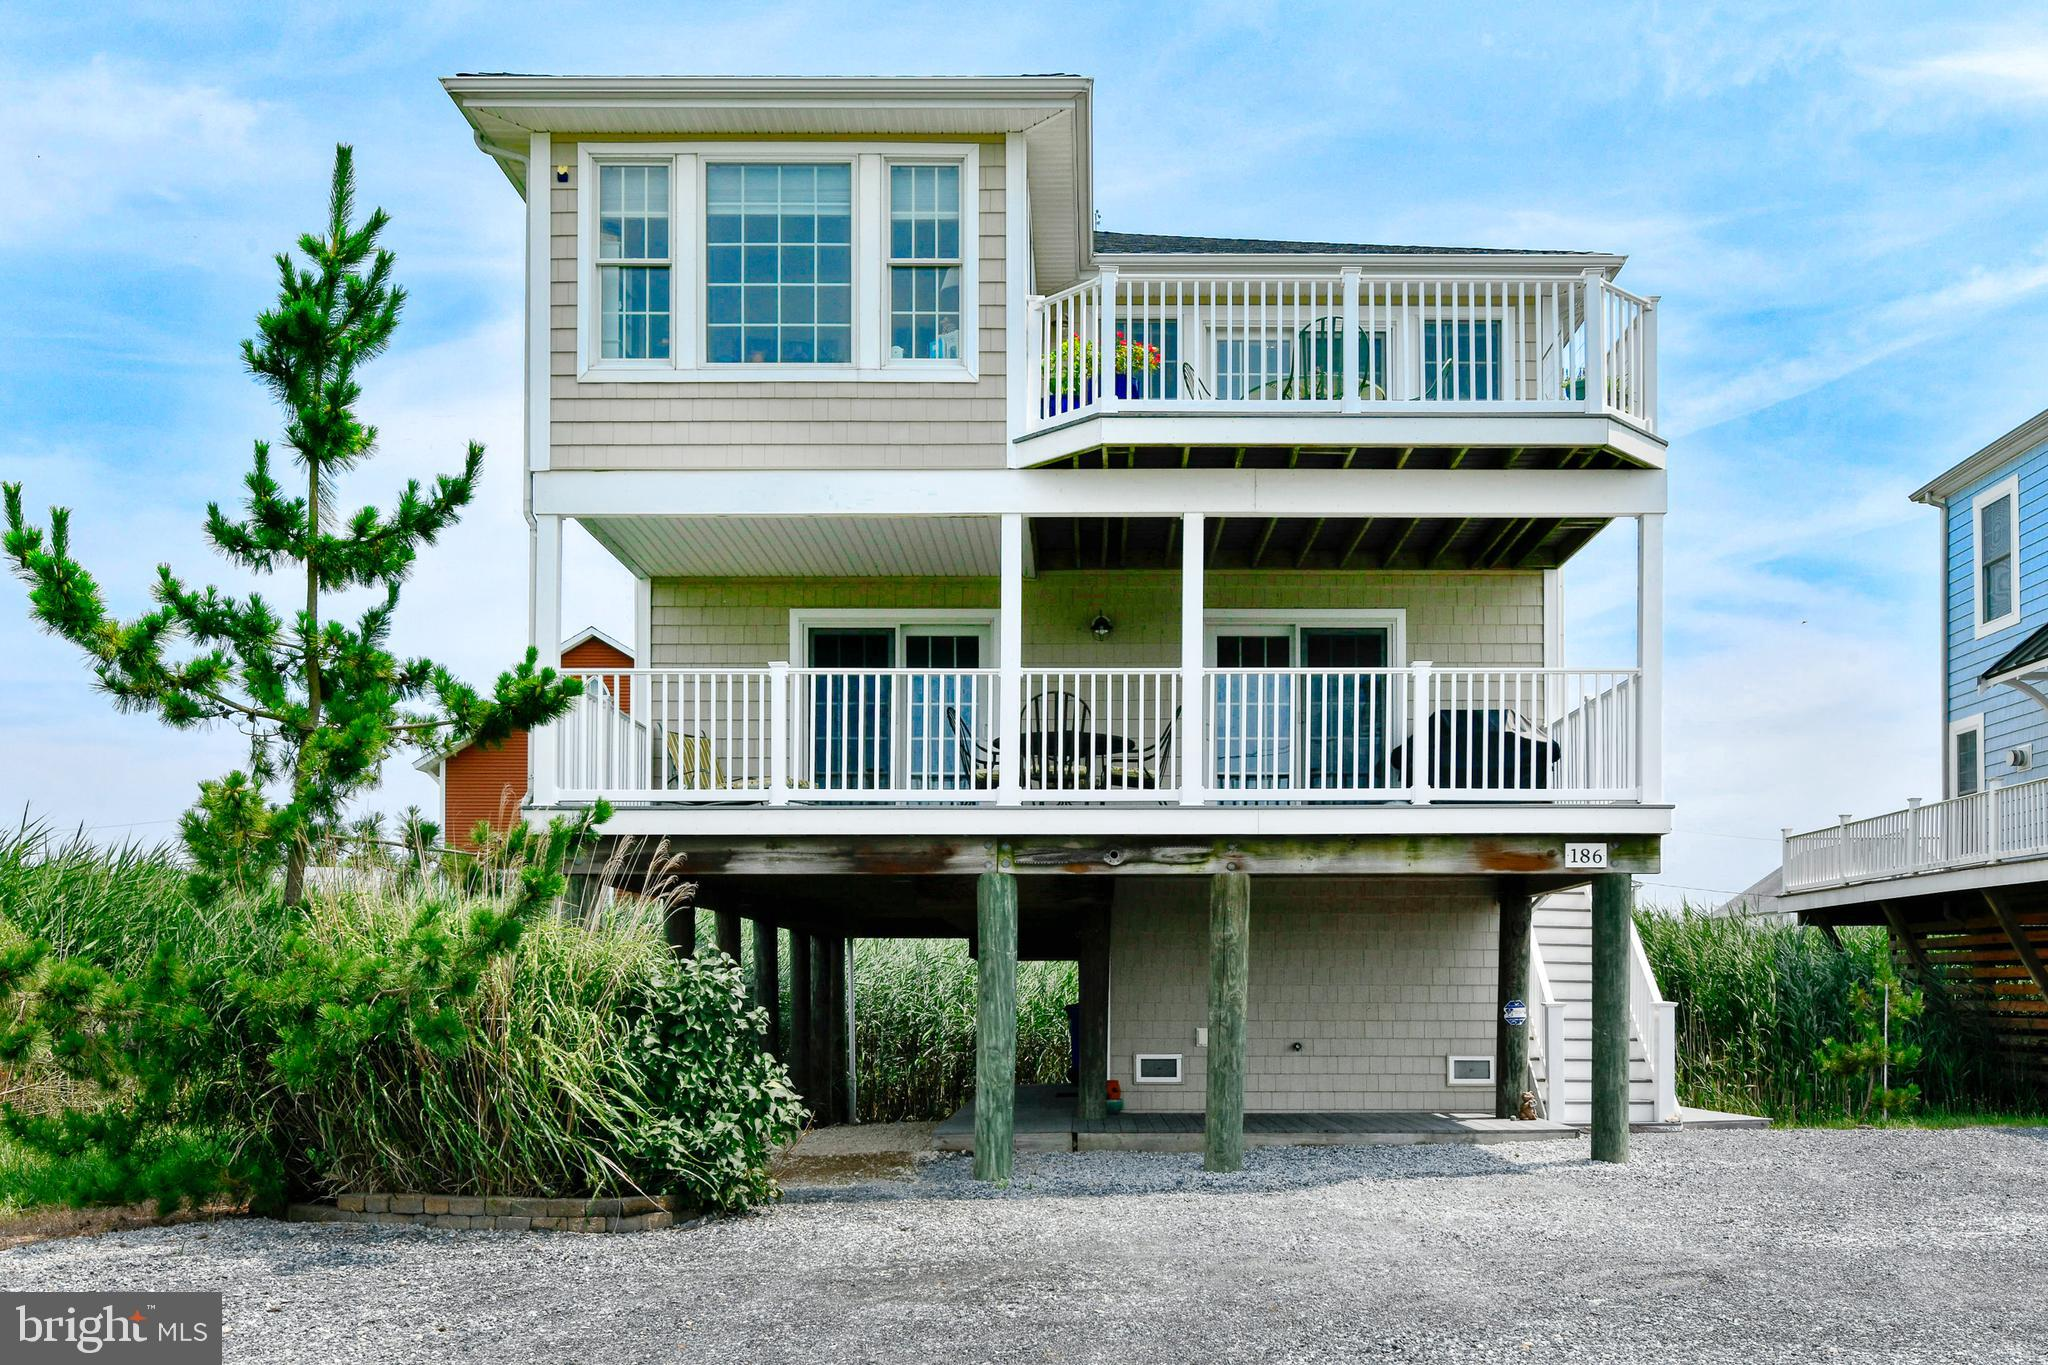 Ready for private, bayside living in a beautiful custom home from Dream Builders? Look no further than this raised 2-story, 4-bedroom gem with over 2,000 square feet of living space! Built in 2009, this location is tough to beat, offering a private setting right where the St. Johns River enters the Delaware Bay. You'll enjoy water views from two sides and a panoramic overlook of state land from two outdoor decks and the 3-season porch! On the first floor, you'll walk into a private living room with access to the 27-foot wide deck. Down the hall are 3 spacious bedrooms, a full bath, and generous laundry room. The staircase leads up into the open-concept kitchen and great room with gas fireplace for fall and winter months. In front is the second deck and beautiful 3-season room, perfect for relaxing with guests and enjoying stunning sunsets over dinner and drinks. Towards the back of the home is the large primary bedroom with private full bath. The federally rated pylons provide a discount on flood insurance – the policy being only $756 annually. Additionally, the home features 6 inch wall construction, Pex plumbing, Anderson low E glass windows and sliders, public sewer and a private well with purification system. The first floor has economic heat pumps with electric back-up, and an electric HVAC system on the second floor. As an added bonus, you're only one street away from access to the water and within walking distance of the small town of Bowers Beach. Stroll to The Bayview Tavern or JP's Wharf, then cap off the evening with Barnacles Ice Cream. For more restaurant and shopping options, both Dover and Milford are a quick drive. This home epitomizes the slower, lower Delaware lifestyle that so many people are seeking! Schedule a showing today!